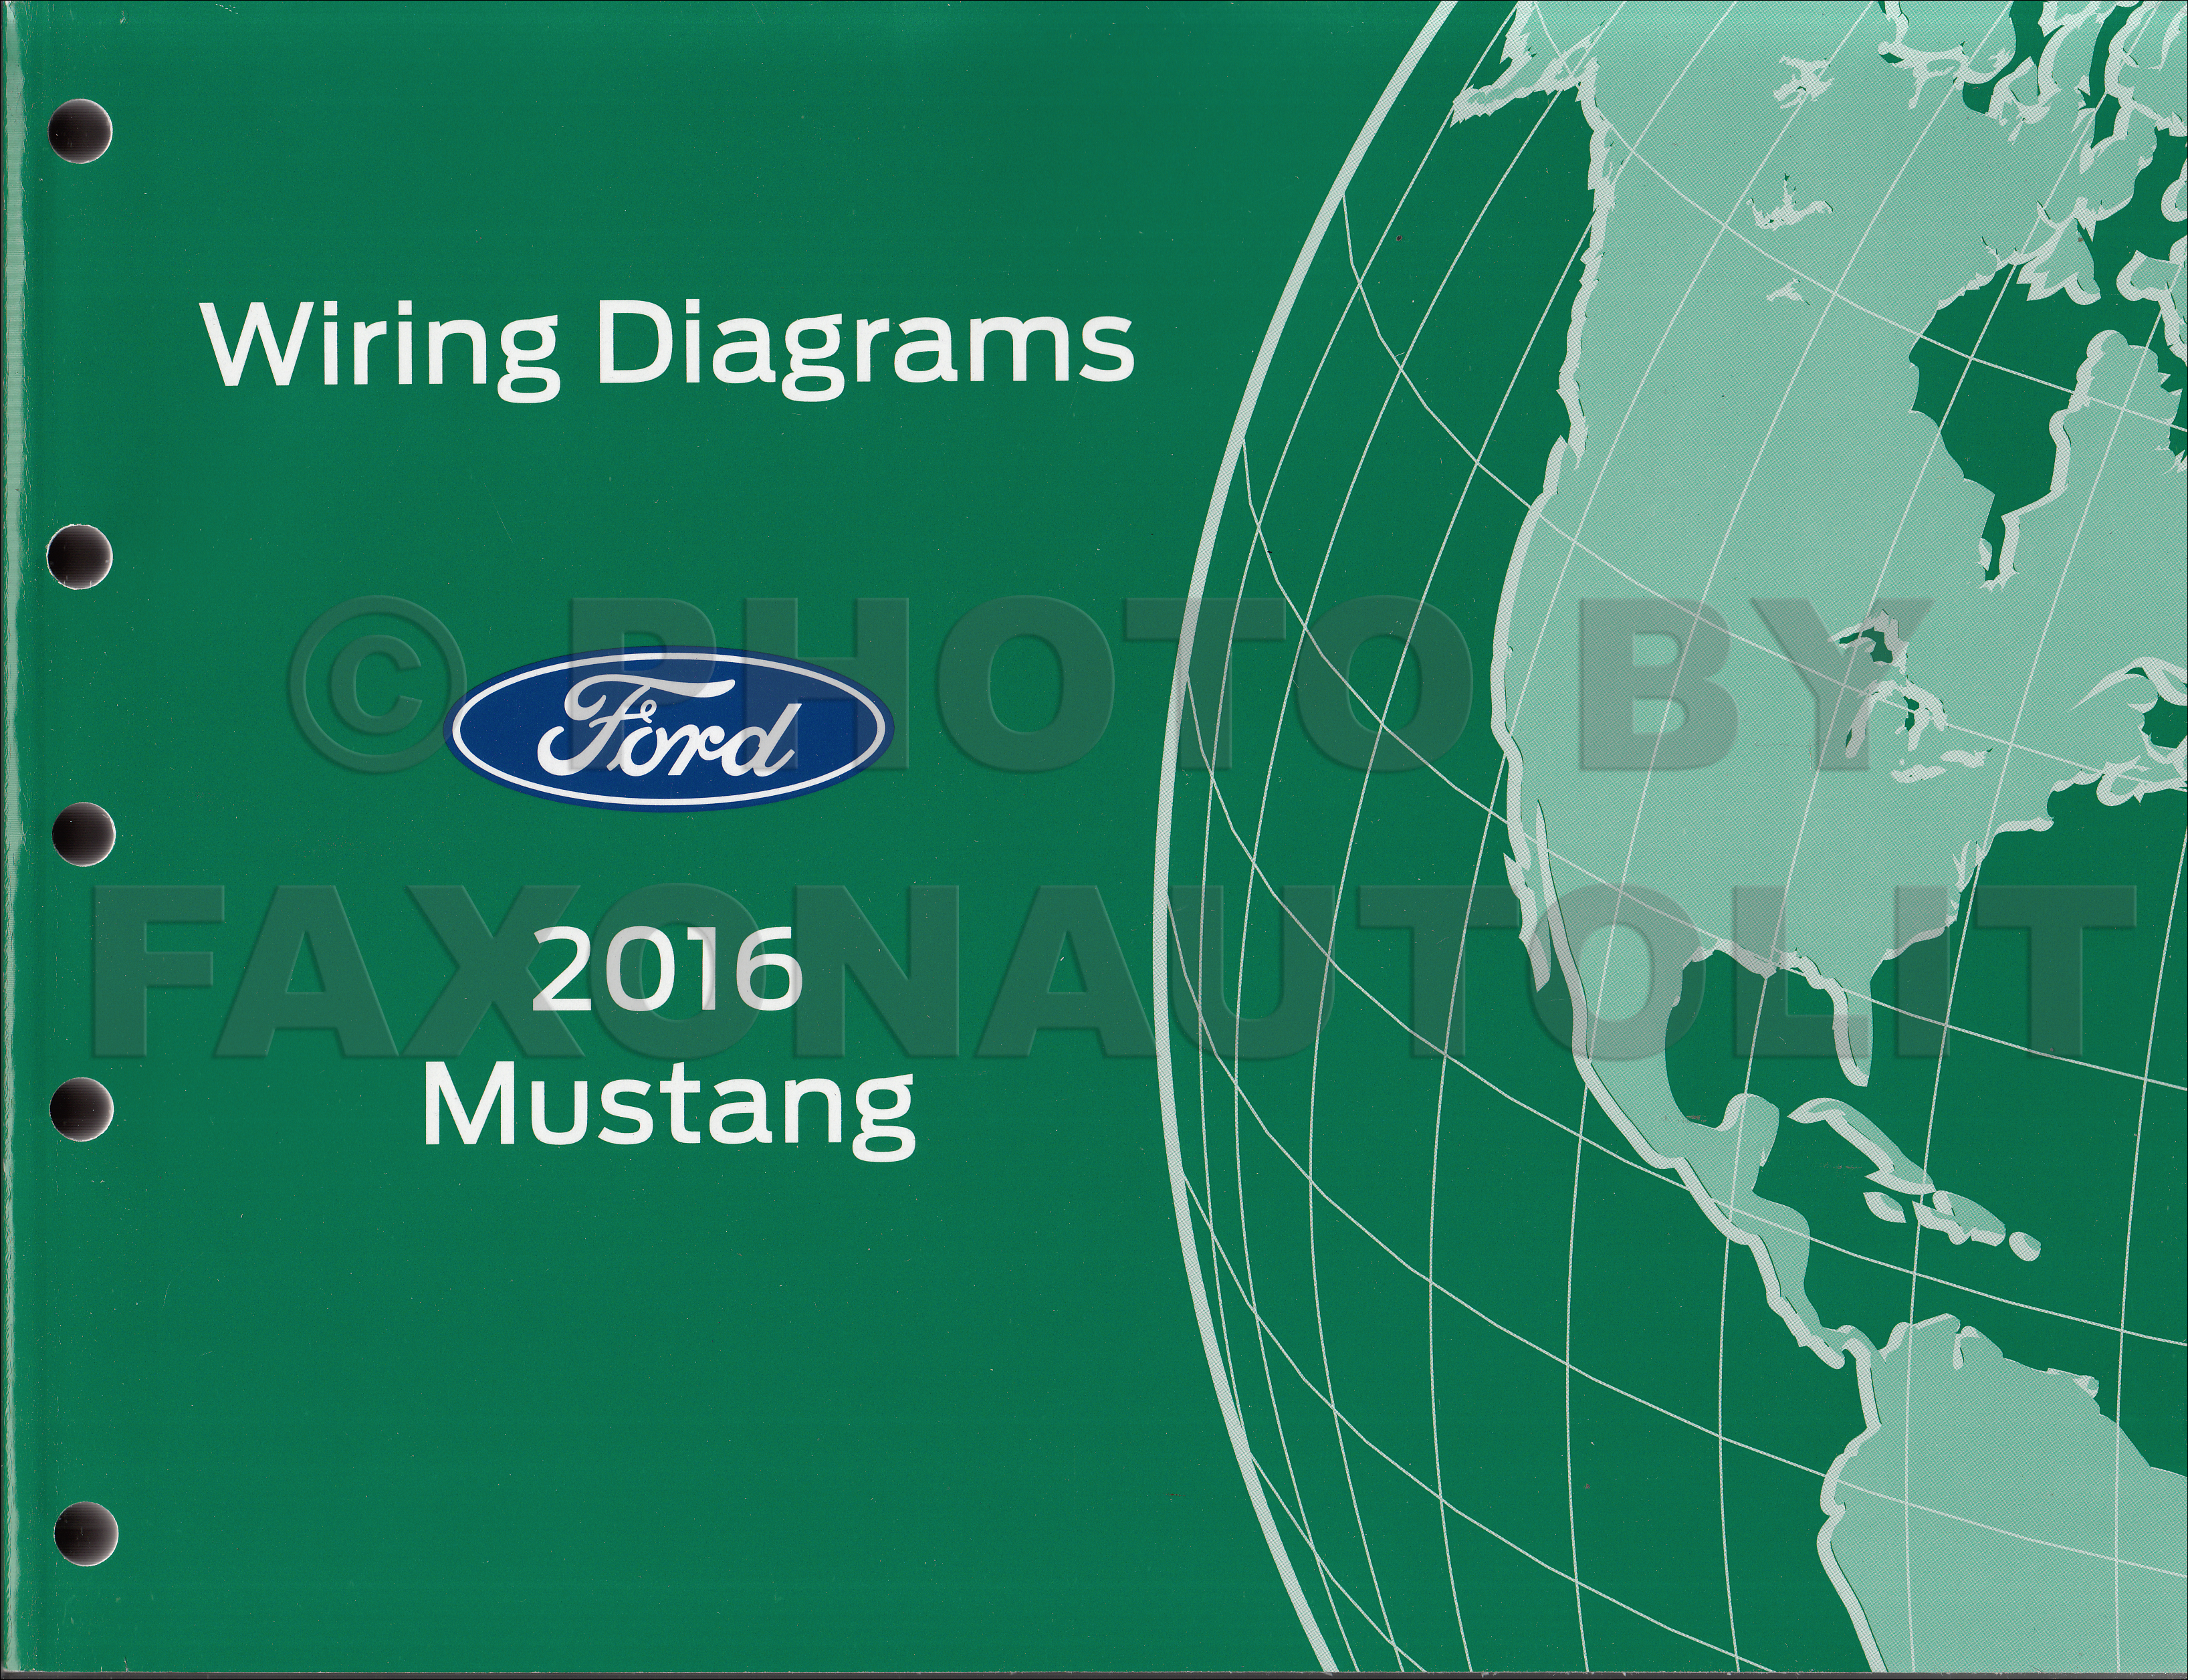 2016FordMustangOWD 2016 ford mustang wiring diagram manual original ford mustang wiring diagram at cos-gaming.co